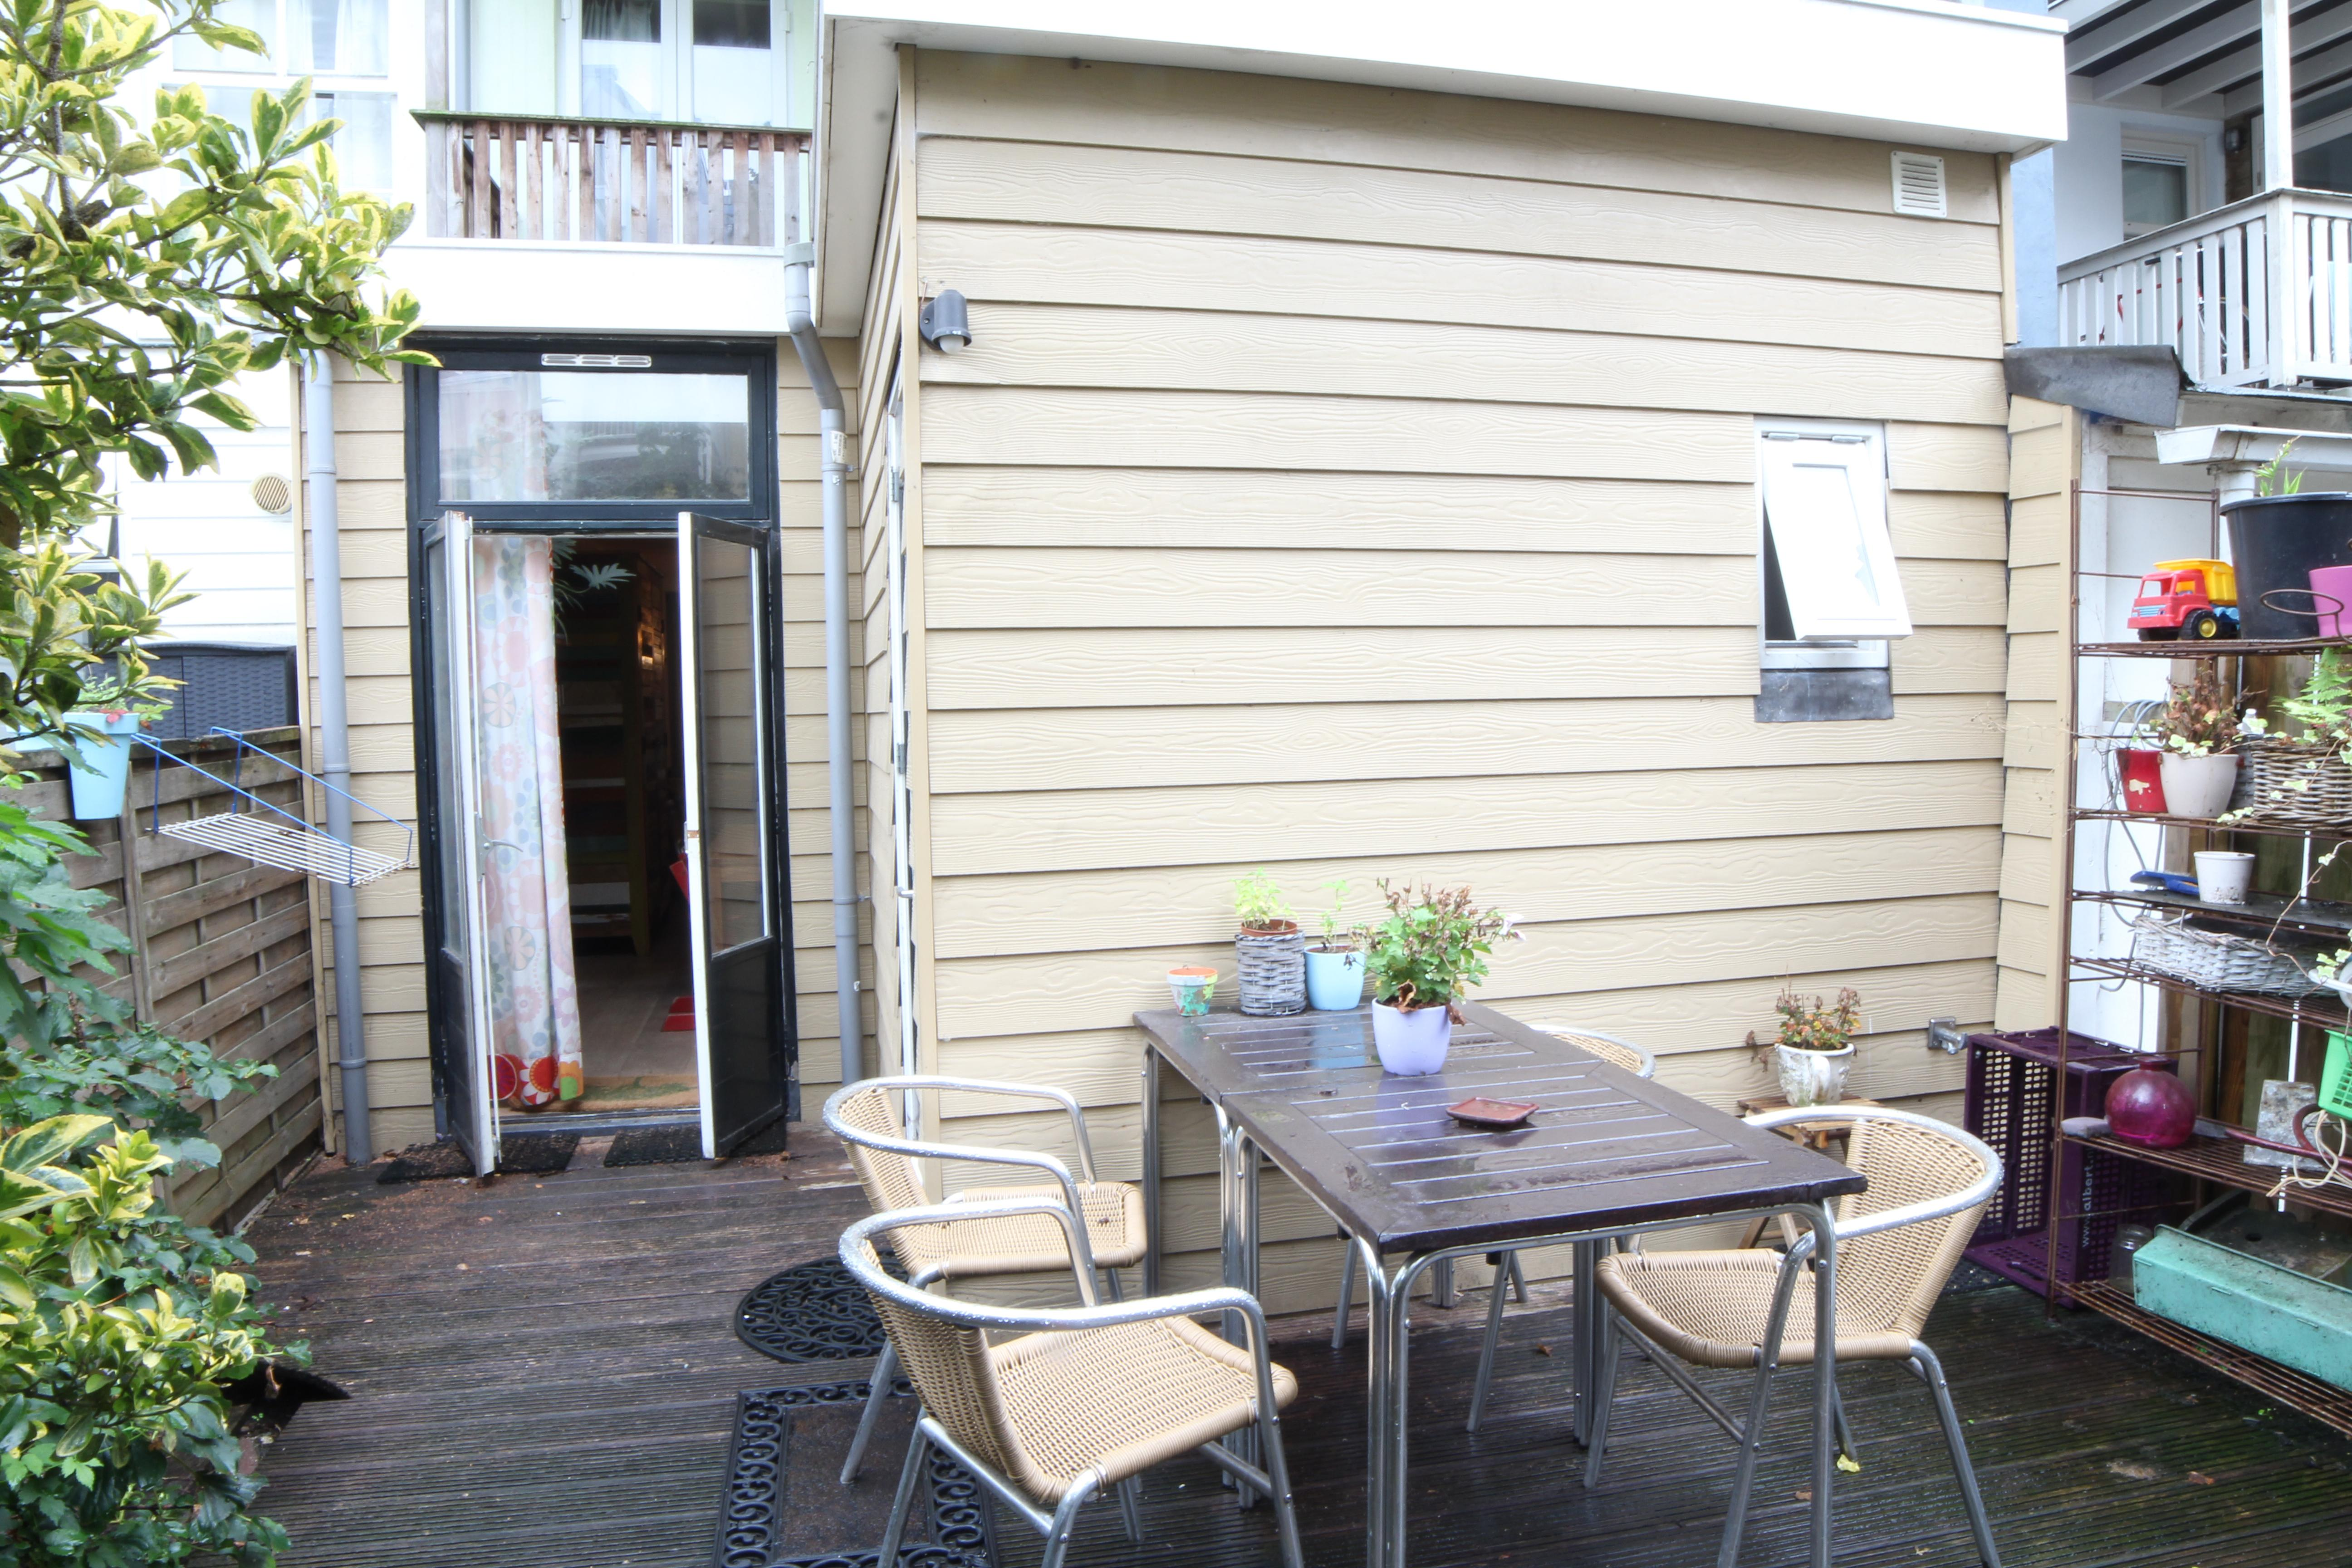 Apartment Amsterdam Double Delight with 3 bedrooms in  quot DE PIJP quot  photo 44930